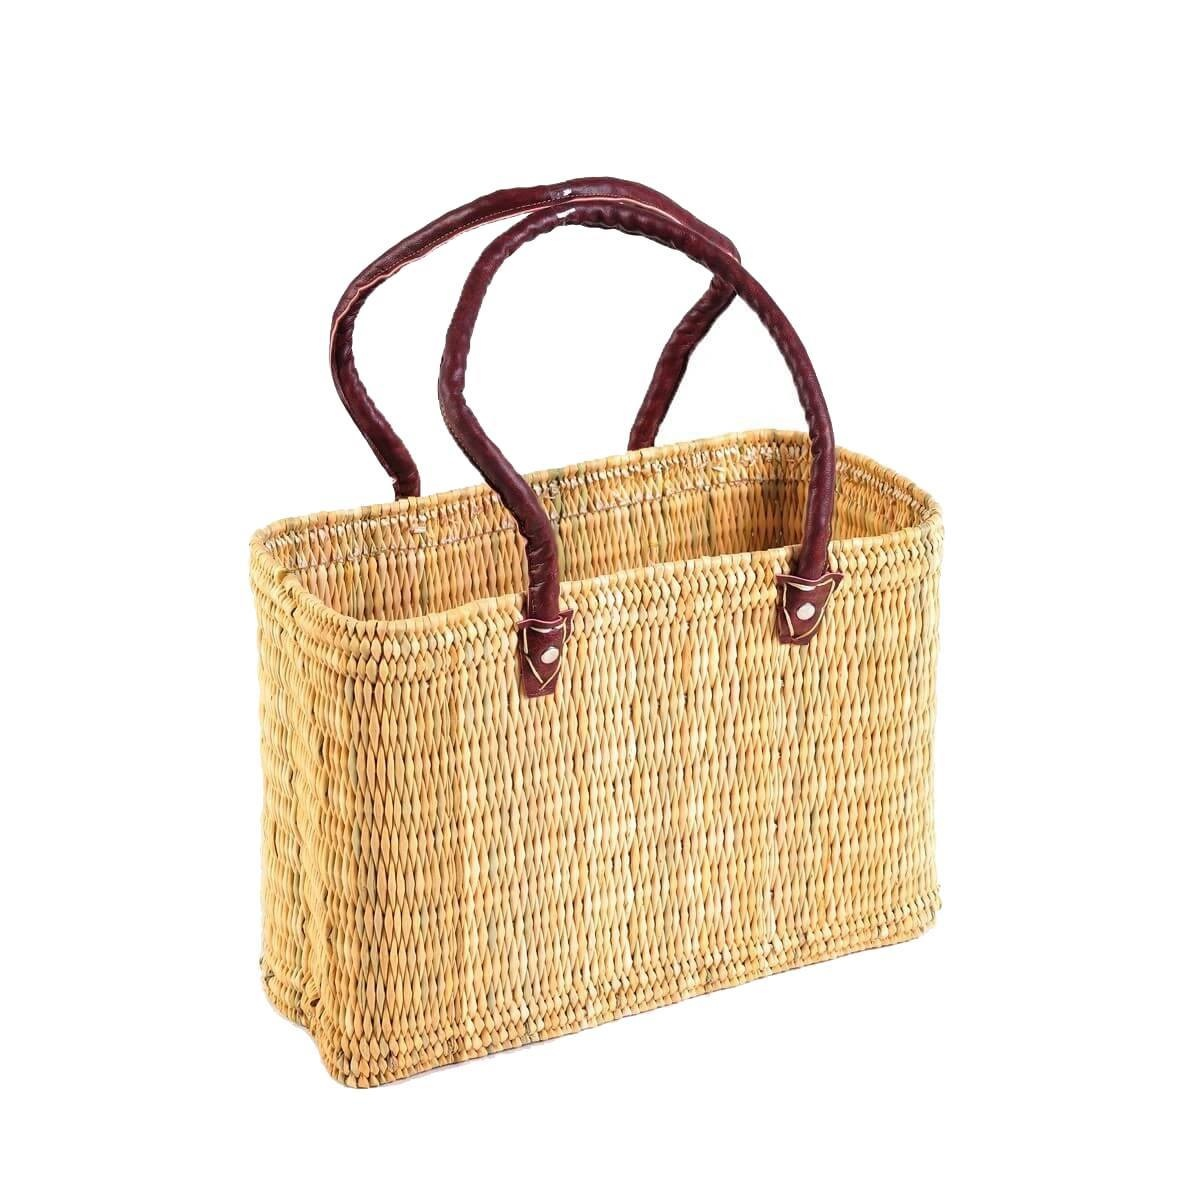 sea grass case basket shopping bag shopping basket wicker basket basket big l ebay. Black Bedroom Furniture Sets. Home Design Ideas